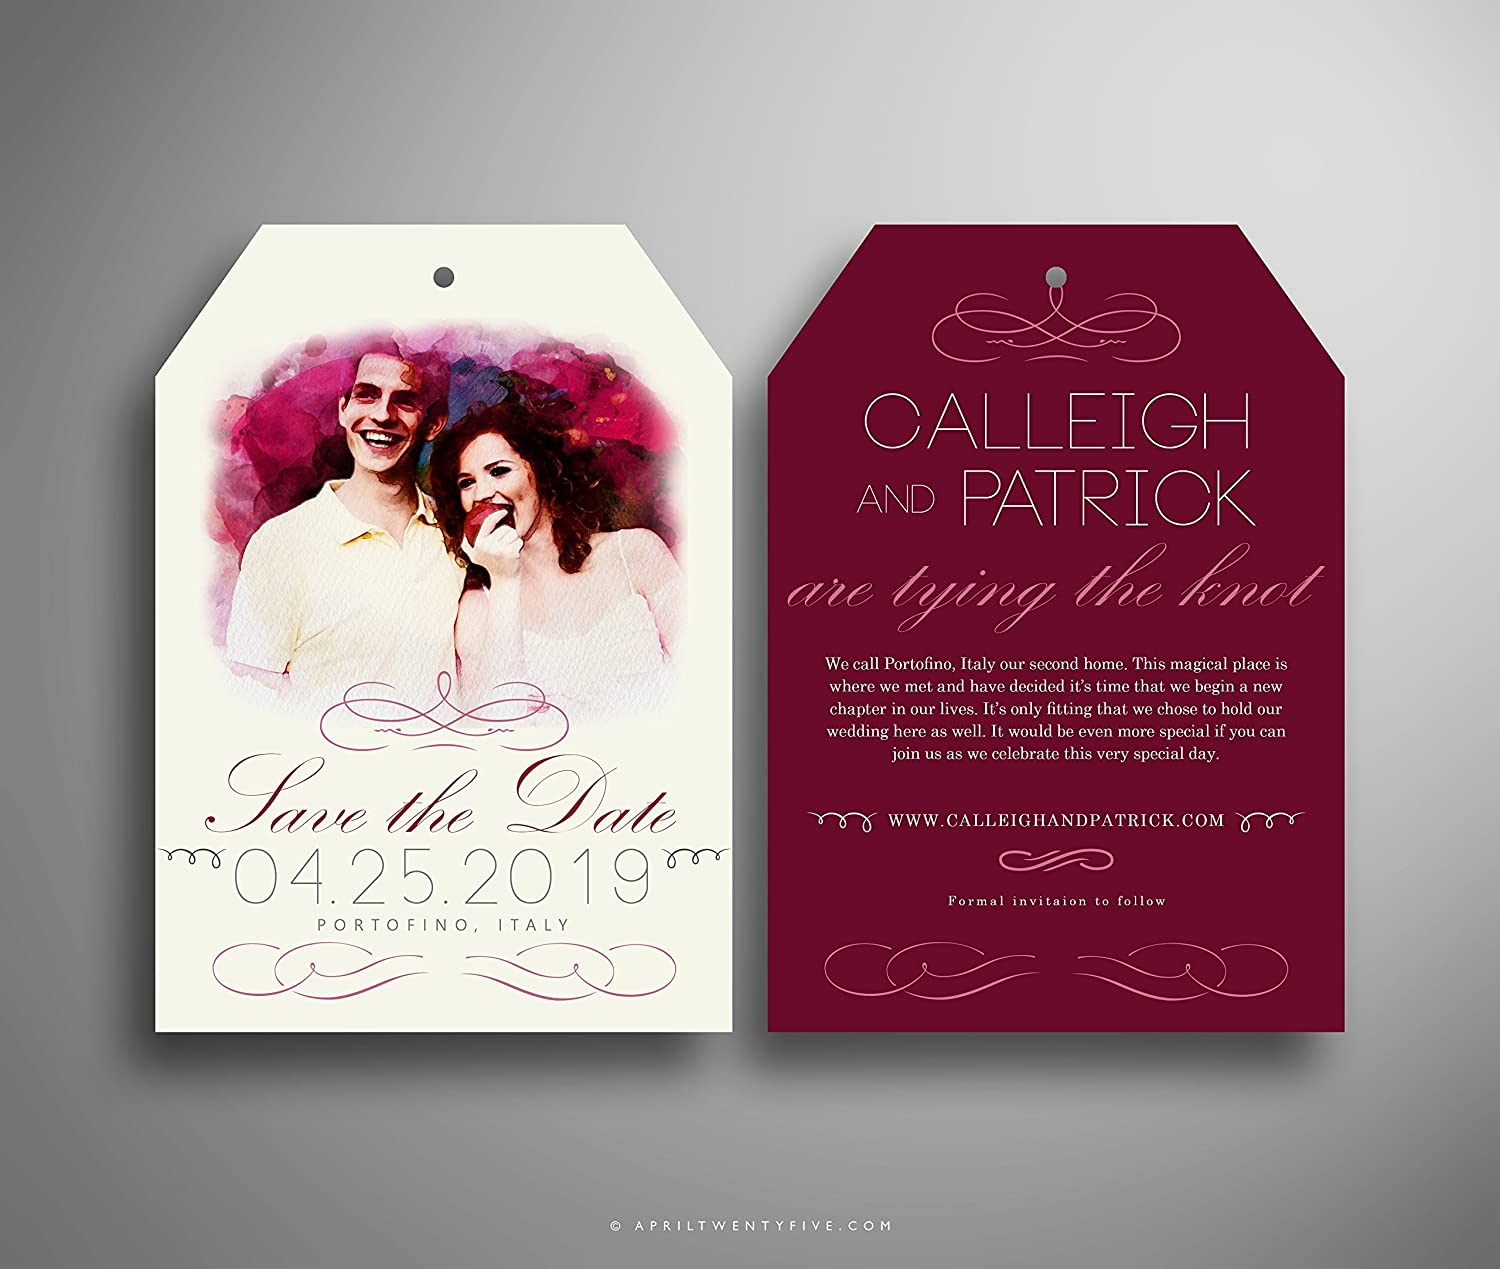 Amazon.com: CALLEIGH Luggage Tag Shaped Save the Date Card with ...